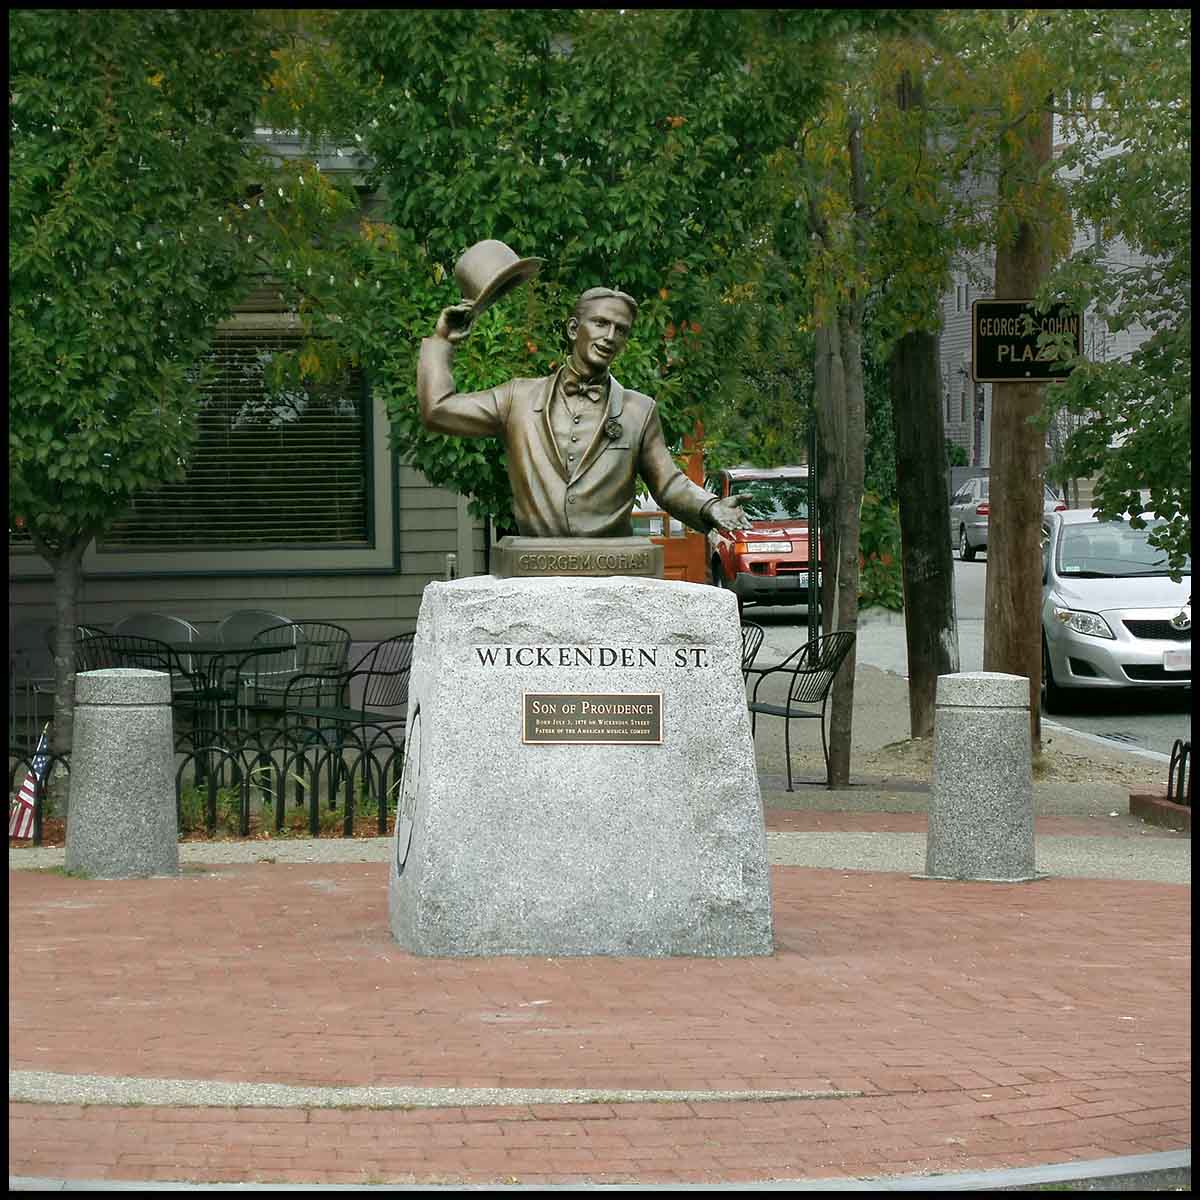 exterior photo of bronze sculpture of George Cohan's upper torso and arms on a stone base on brick plaza